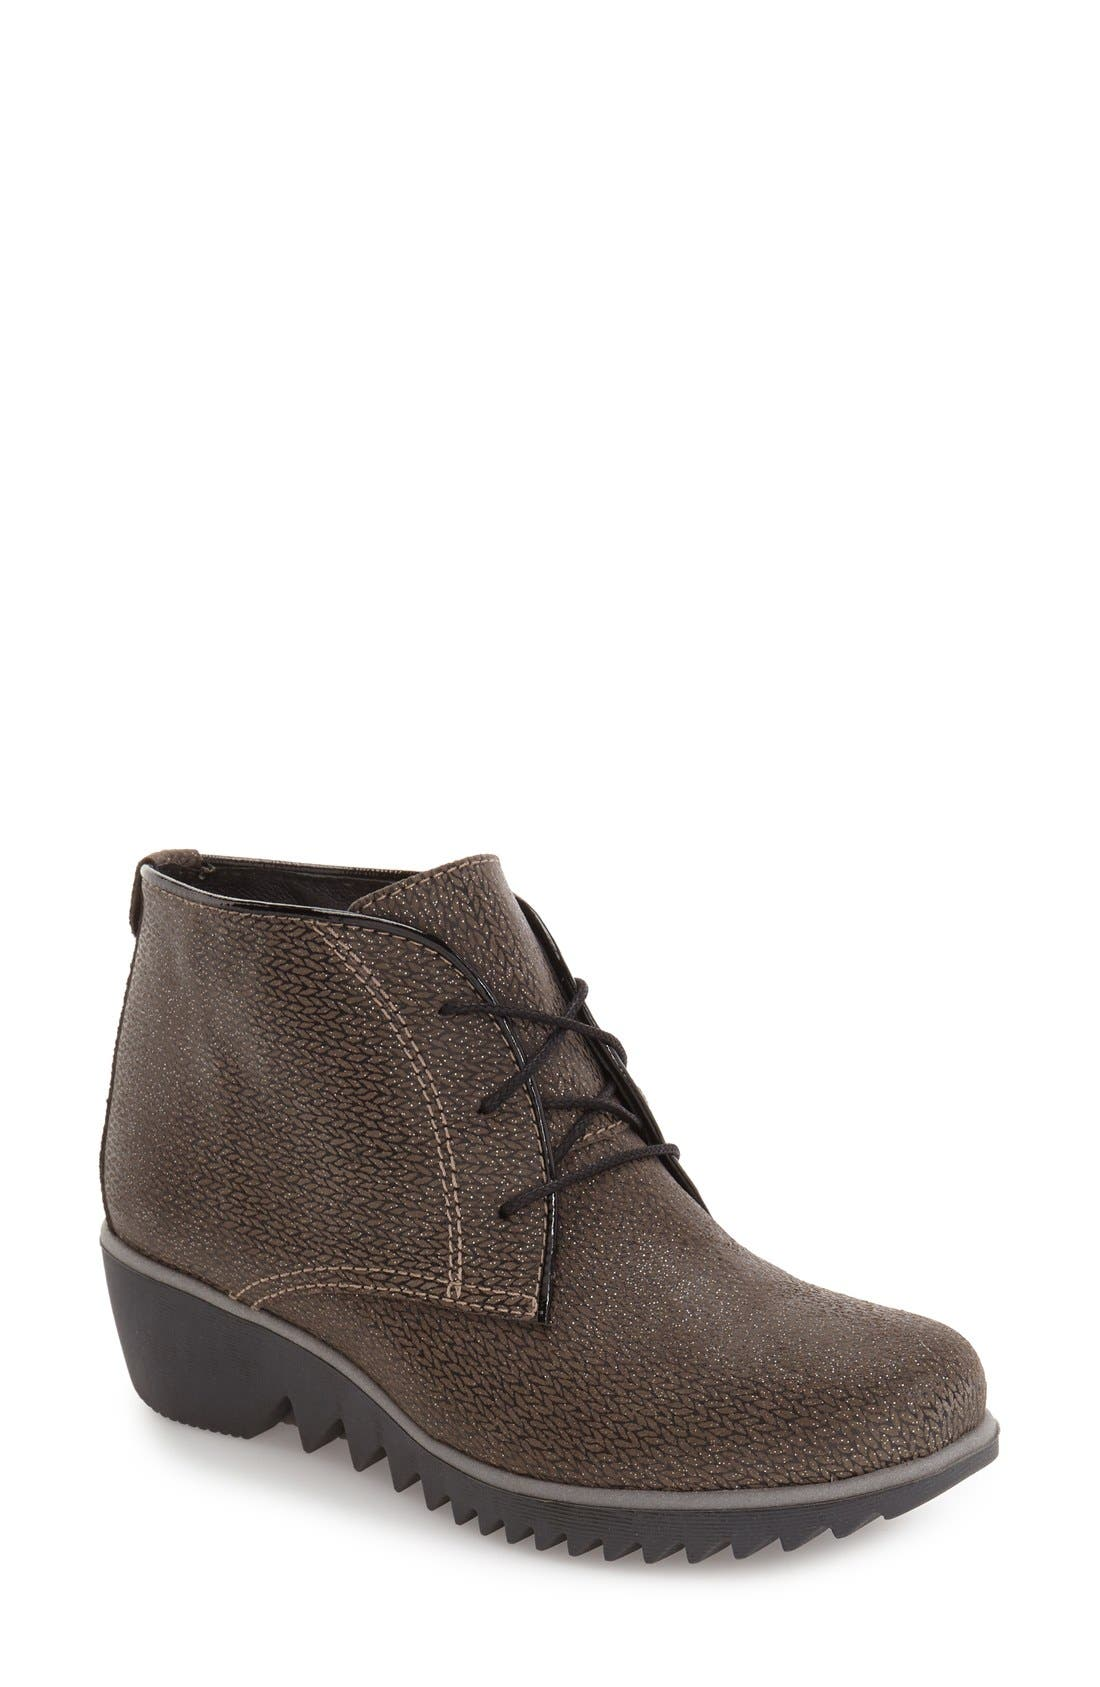 'Dusty' Hidden Wedge Bootie,                         Main,                         color, TAUPE MALIBU SUEDE